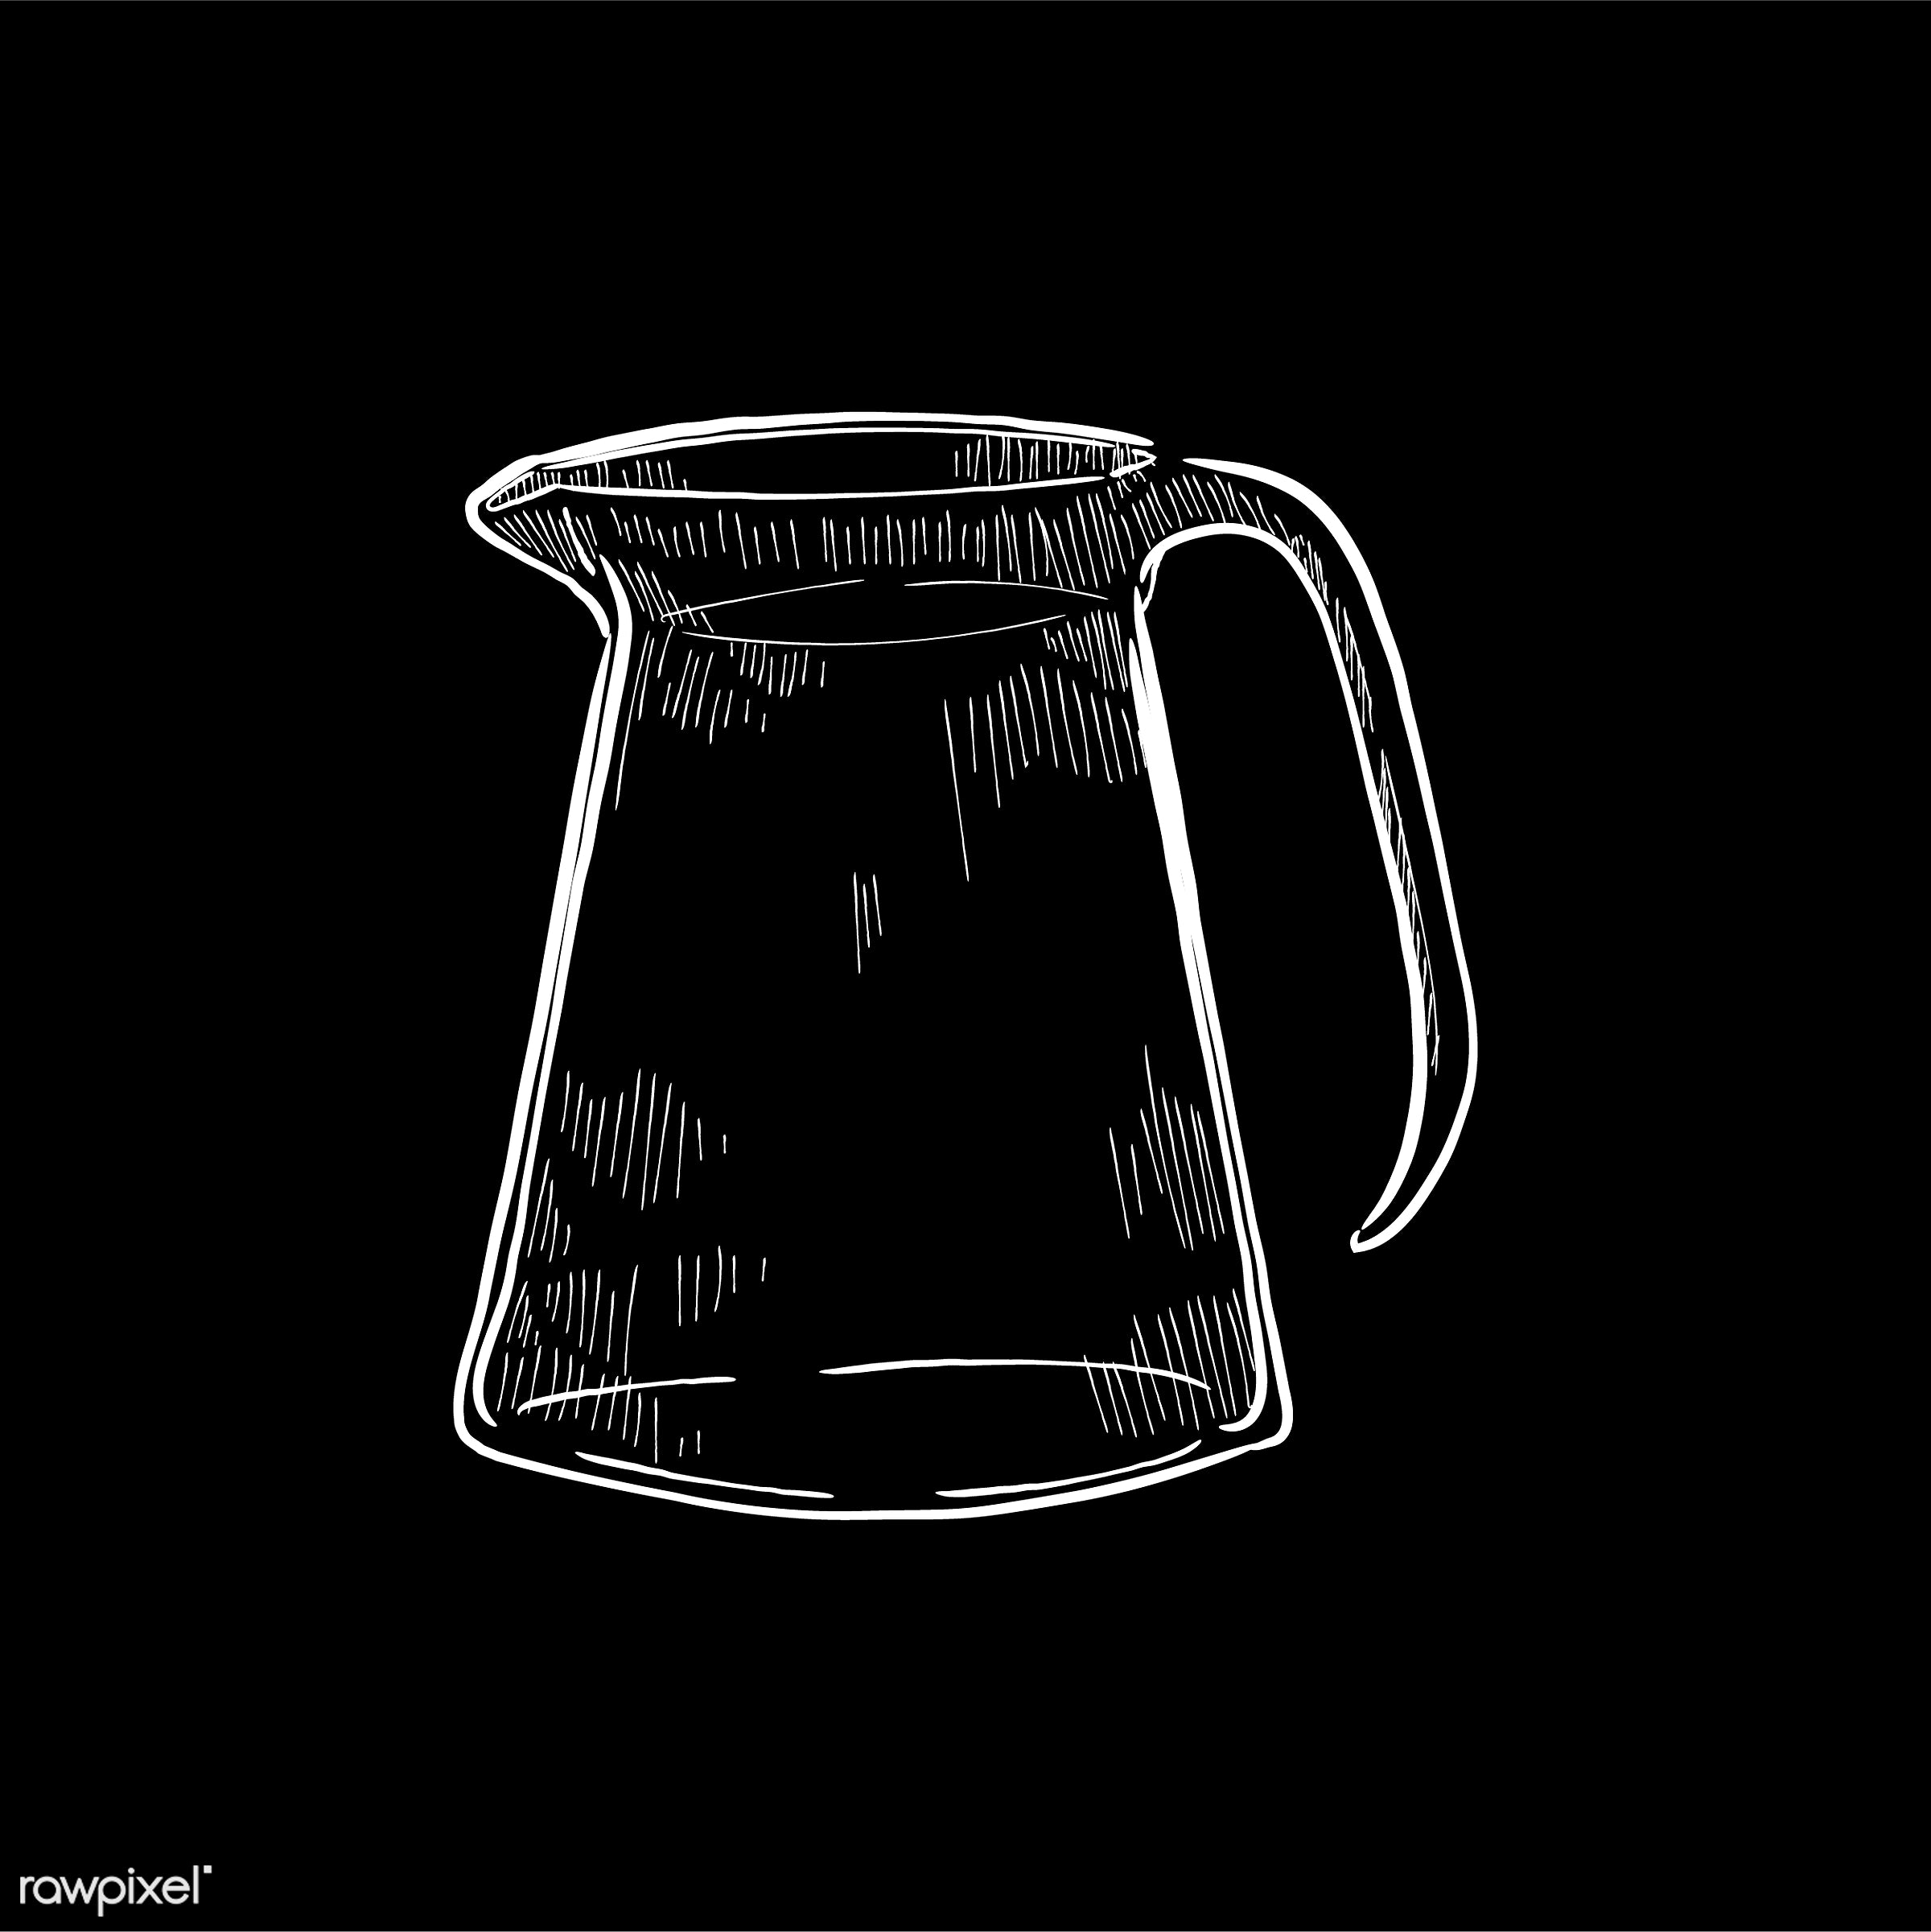 Vintage illustration of a pitcher - coffee, antique, aroma, beverage, black, cafe, coffee pot, coffee shop, design, drawing...